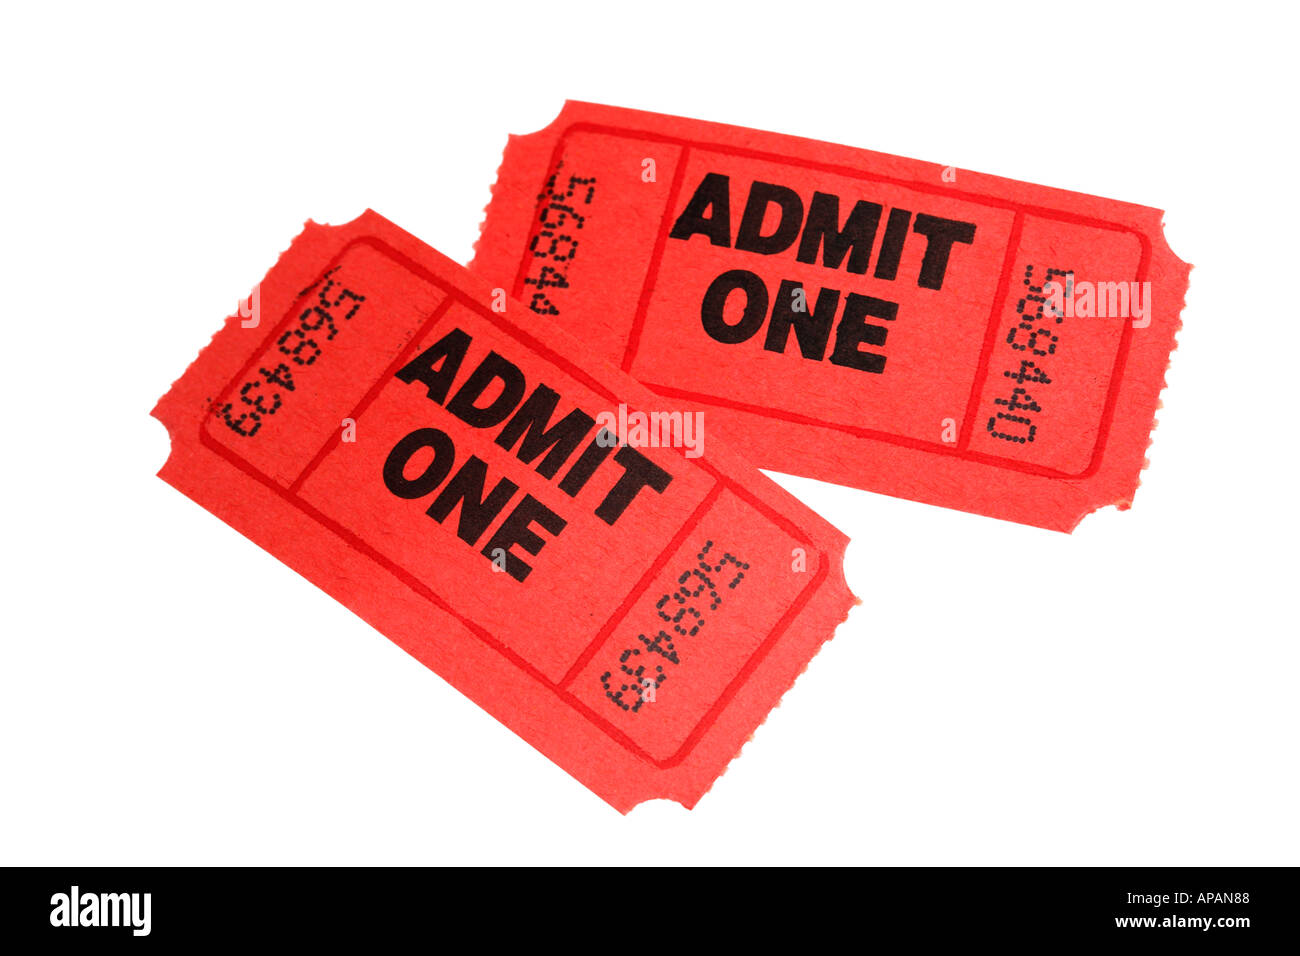 Pair of tickets - Stock Image